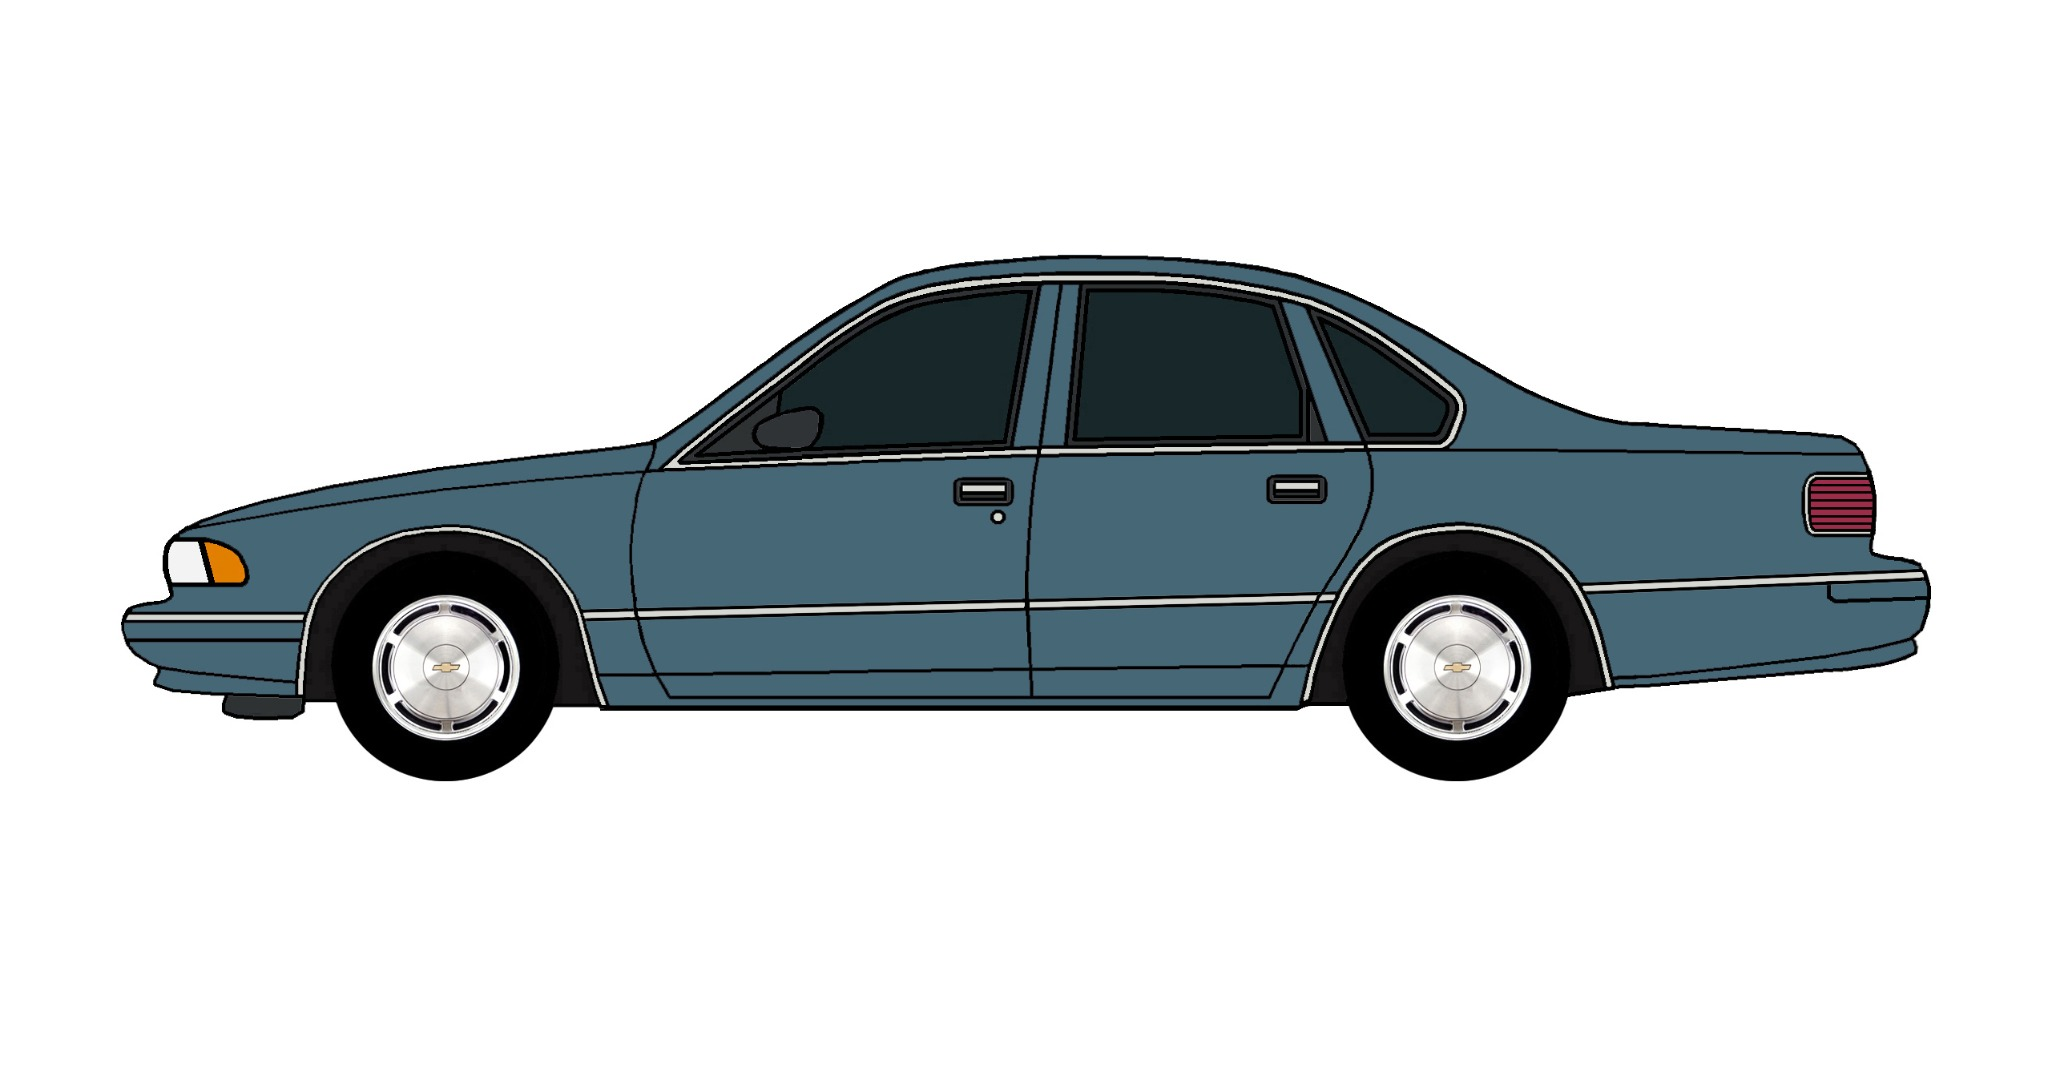 1995 Chevy Caprice BRITTANY BLUE